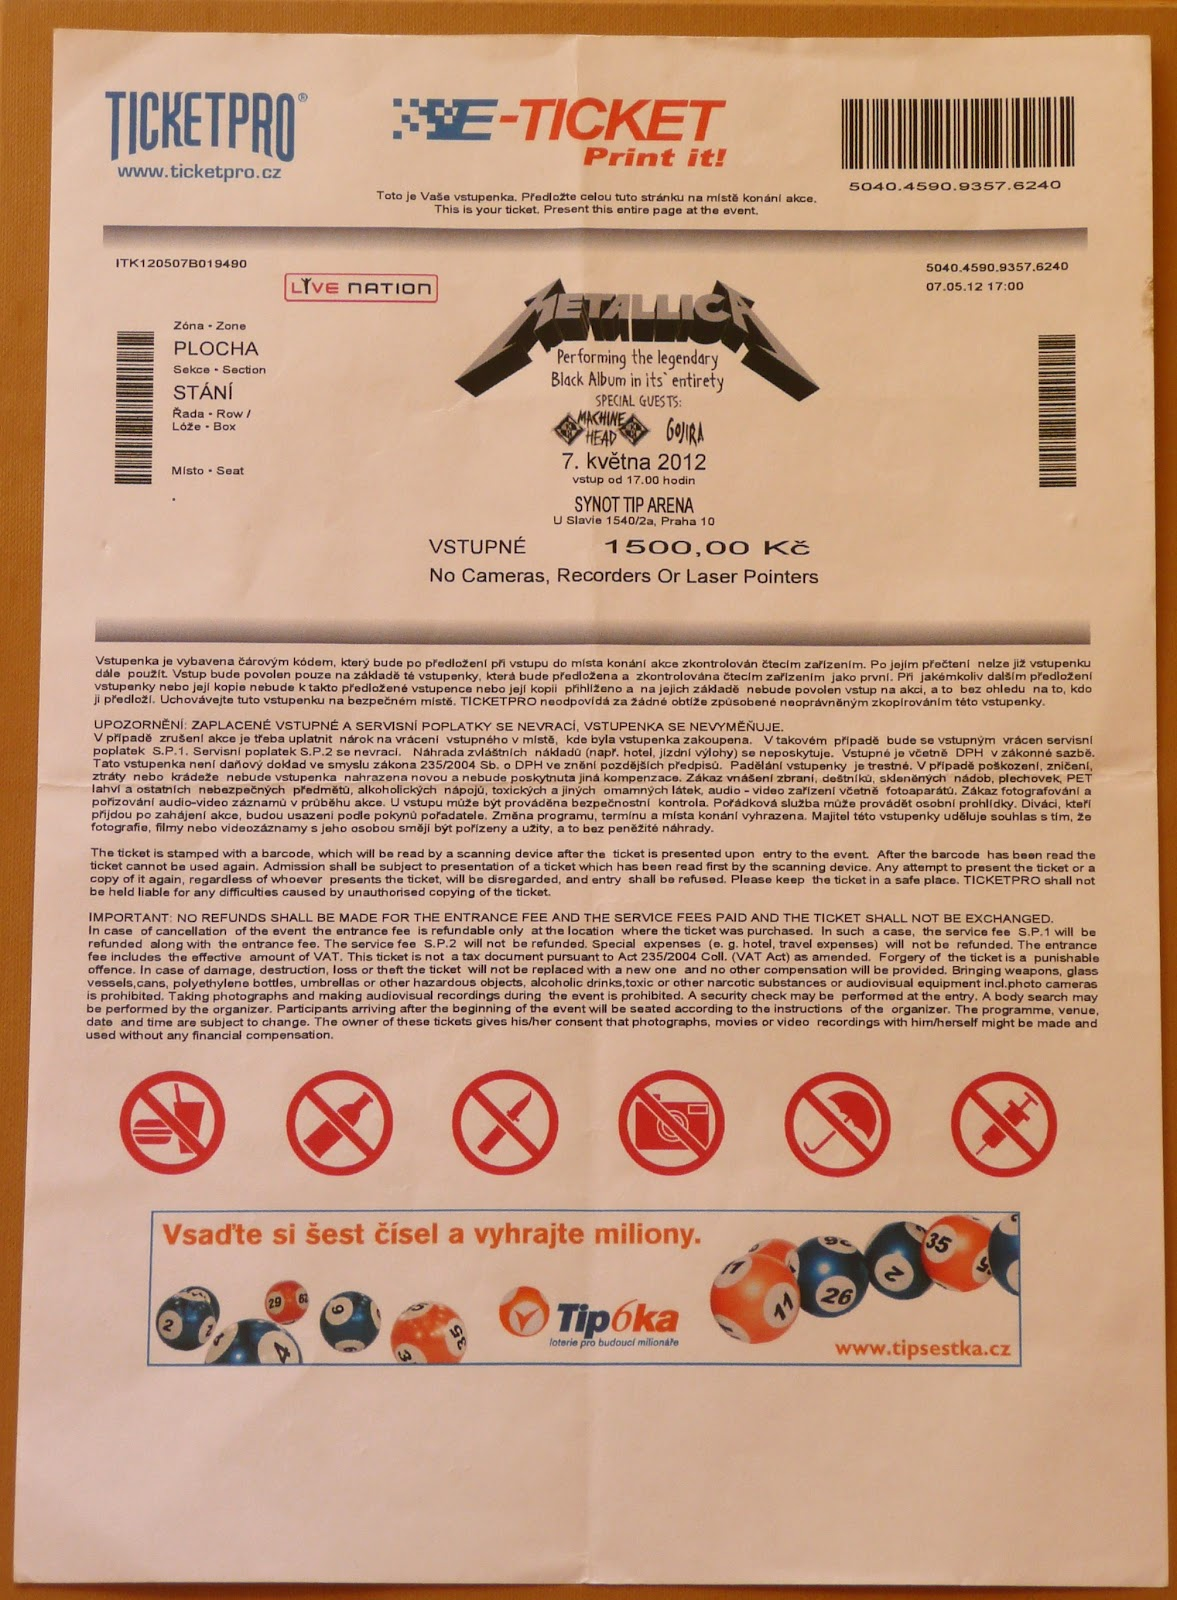 metallica tickets collection one concert different tickets